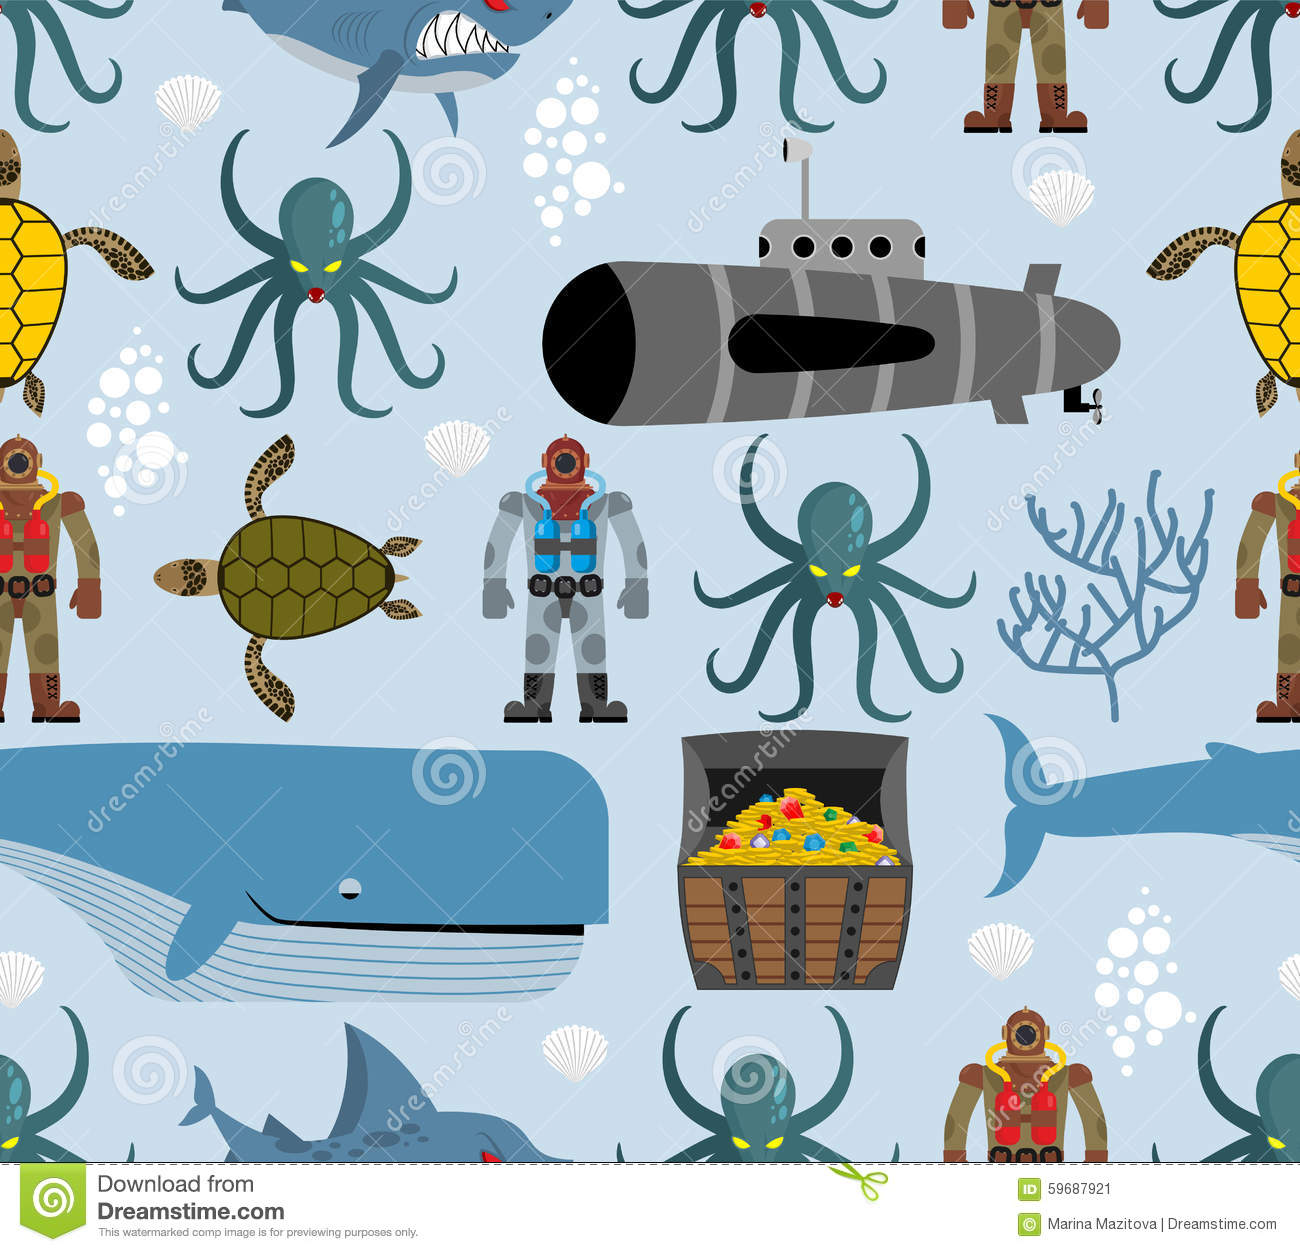 Ocean seamless pattern. Marine life: whale and turtle. Octopus a